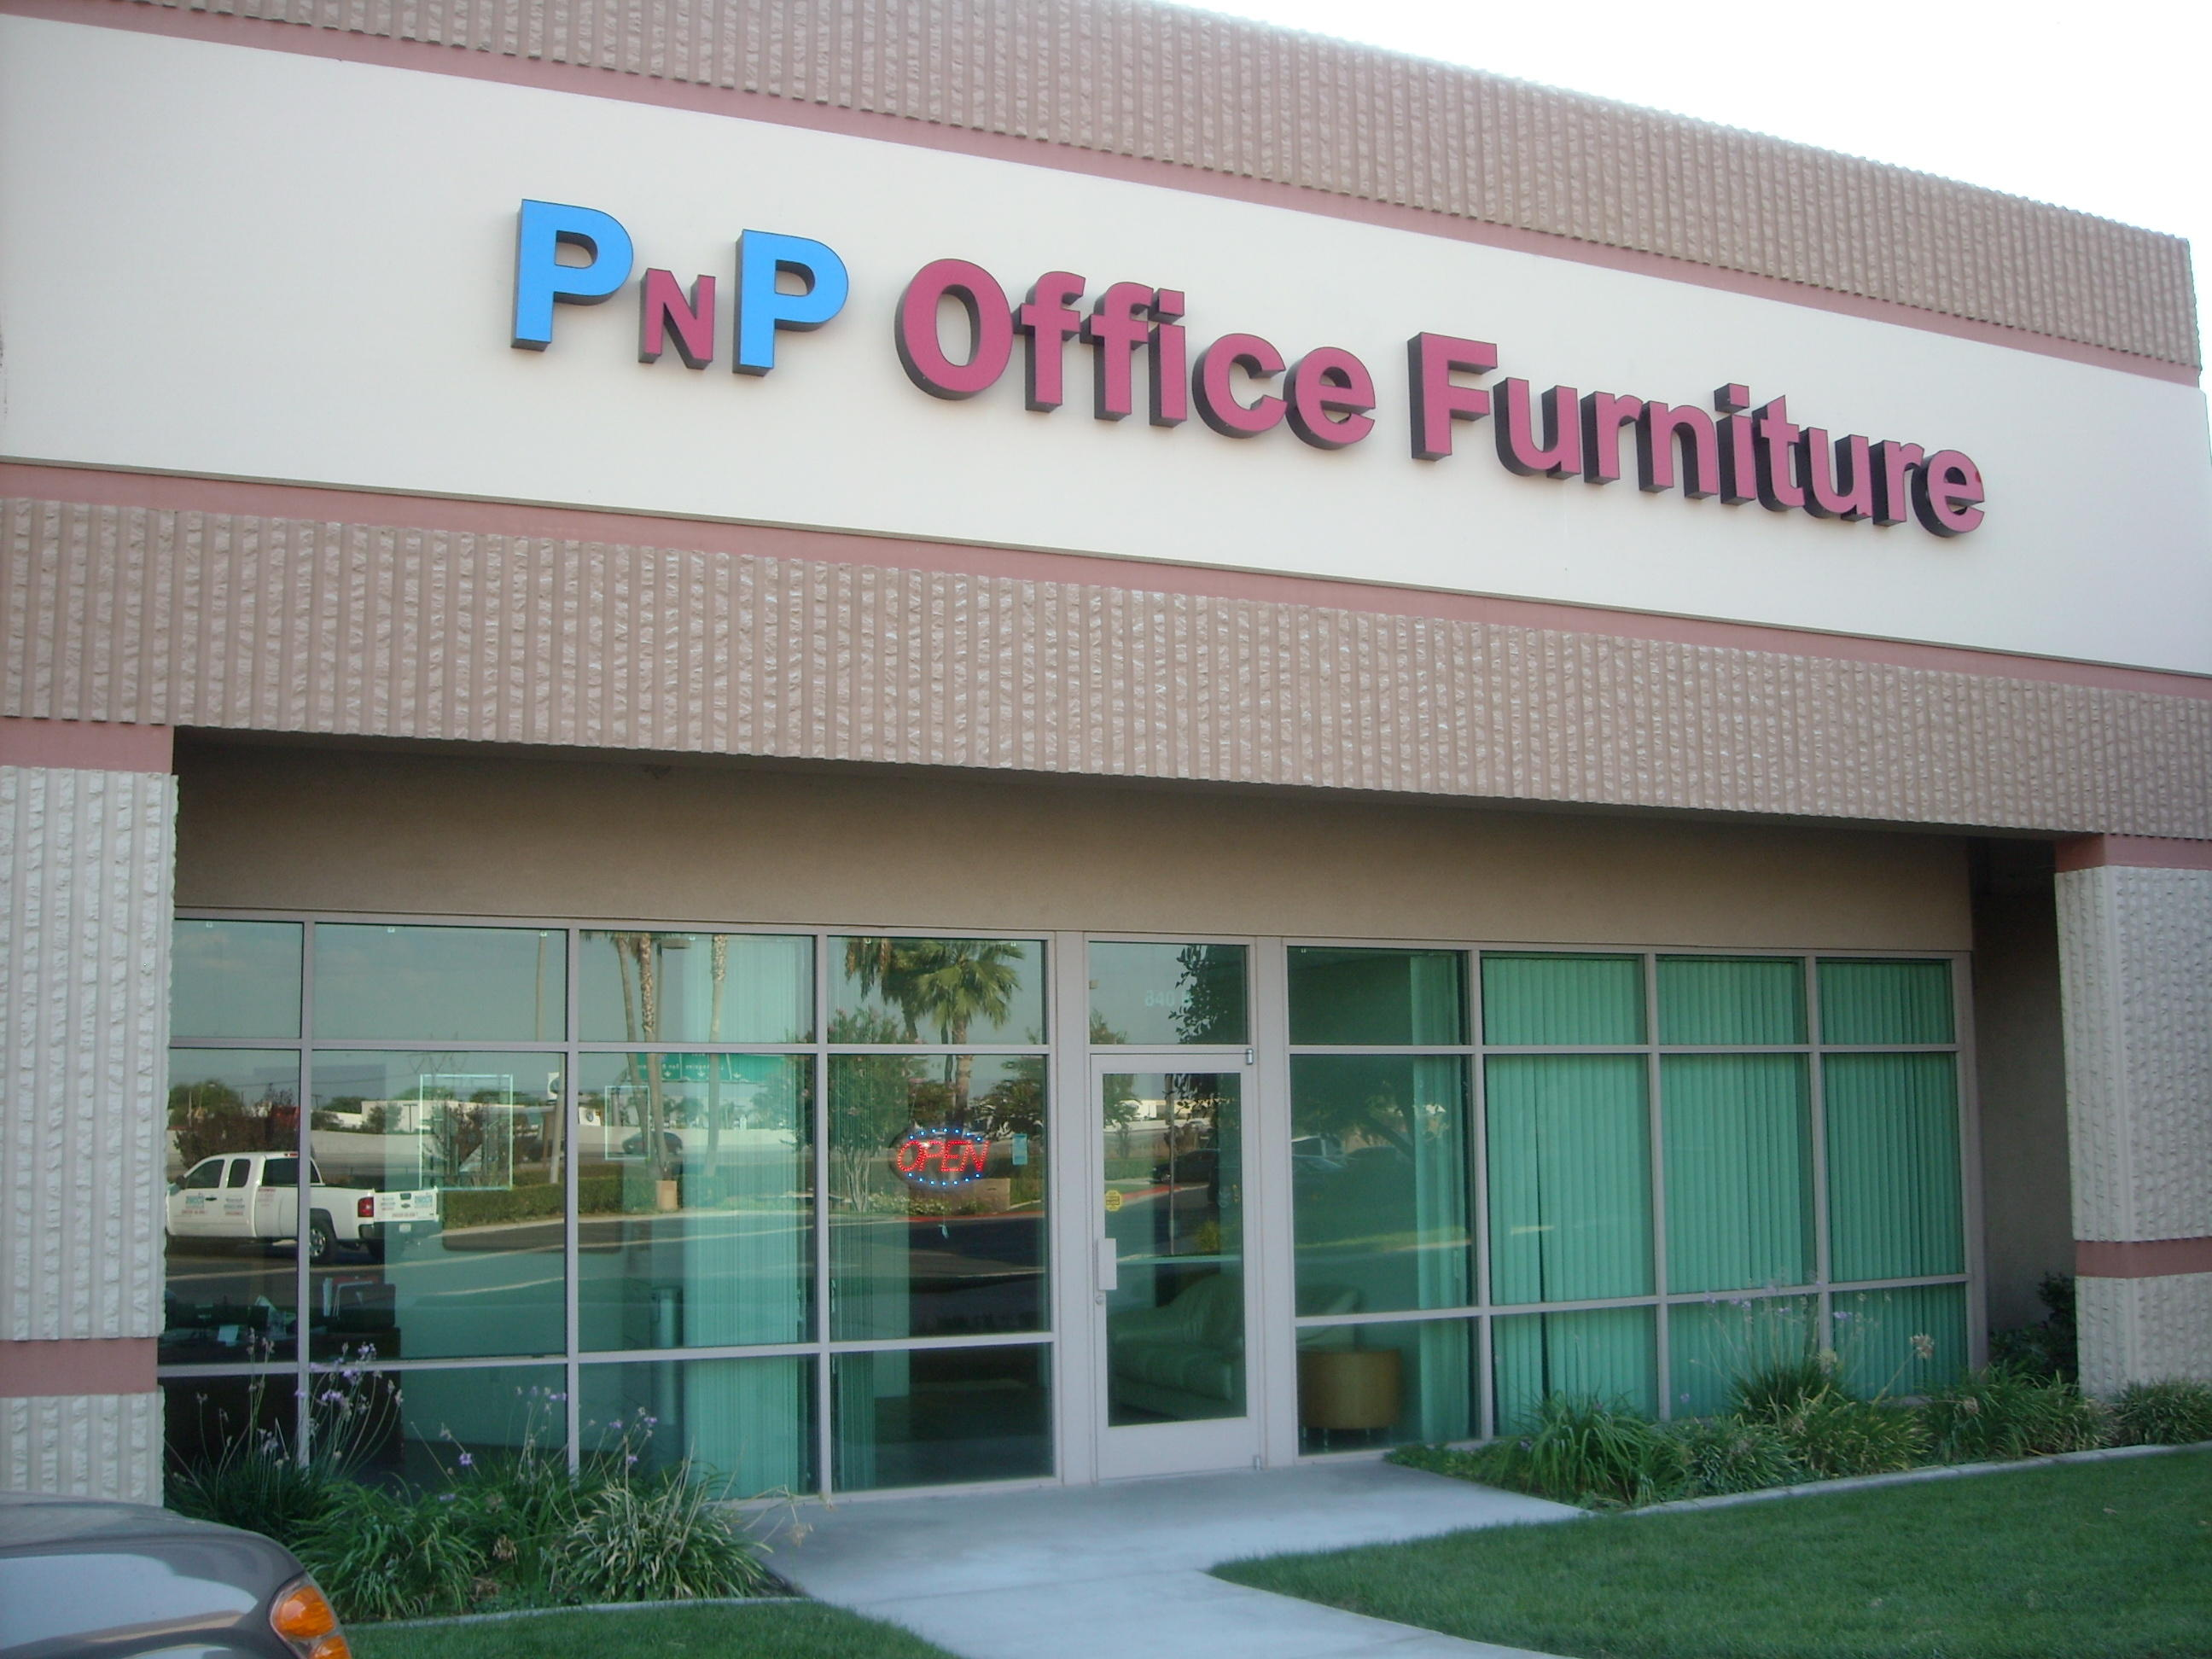 Furniture Stores In Ontario Canada Pnp Office Furniture Coupons Near Me In Ontario 8coupons